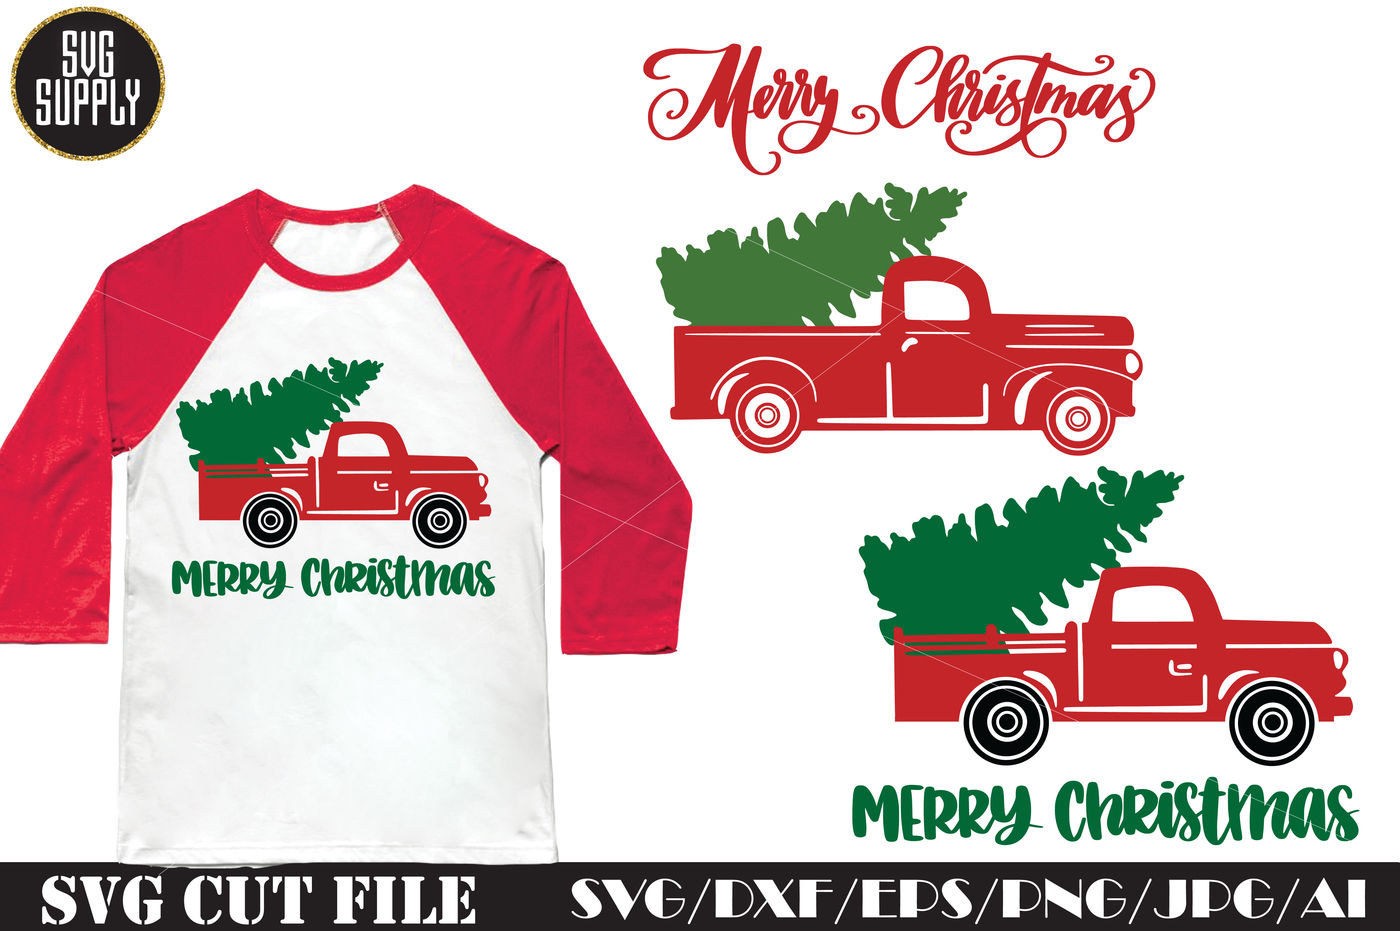 Christmas Truck Svg.Christmas Tree Truck Svg Cut File By Svgsupply